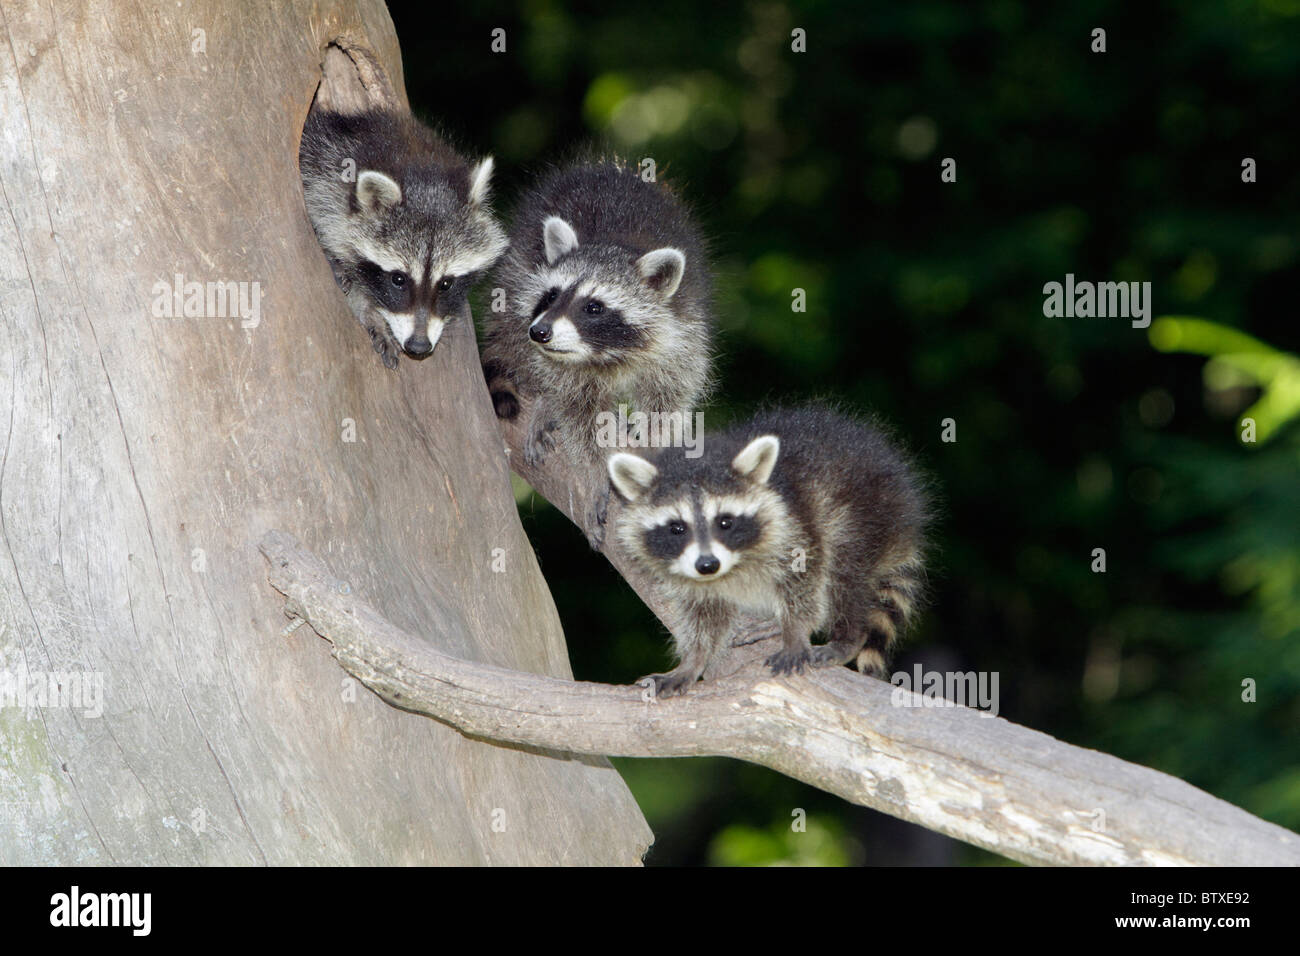 Raccoon (Procyon lotor), three baby animals, sitting in front of den entrance in tree stump, Germany - Stock Image